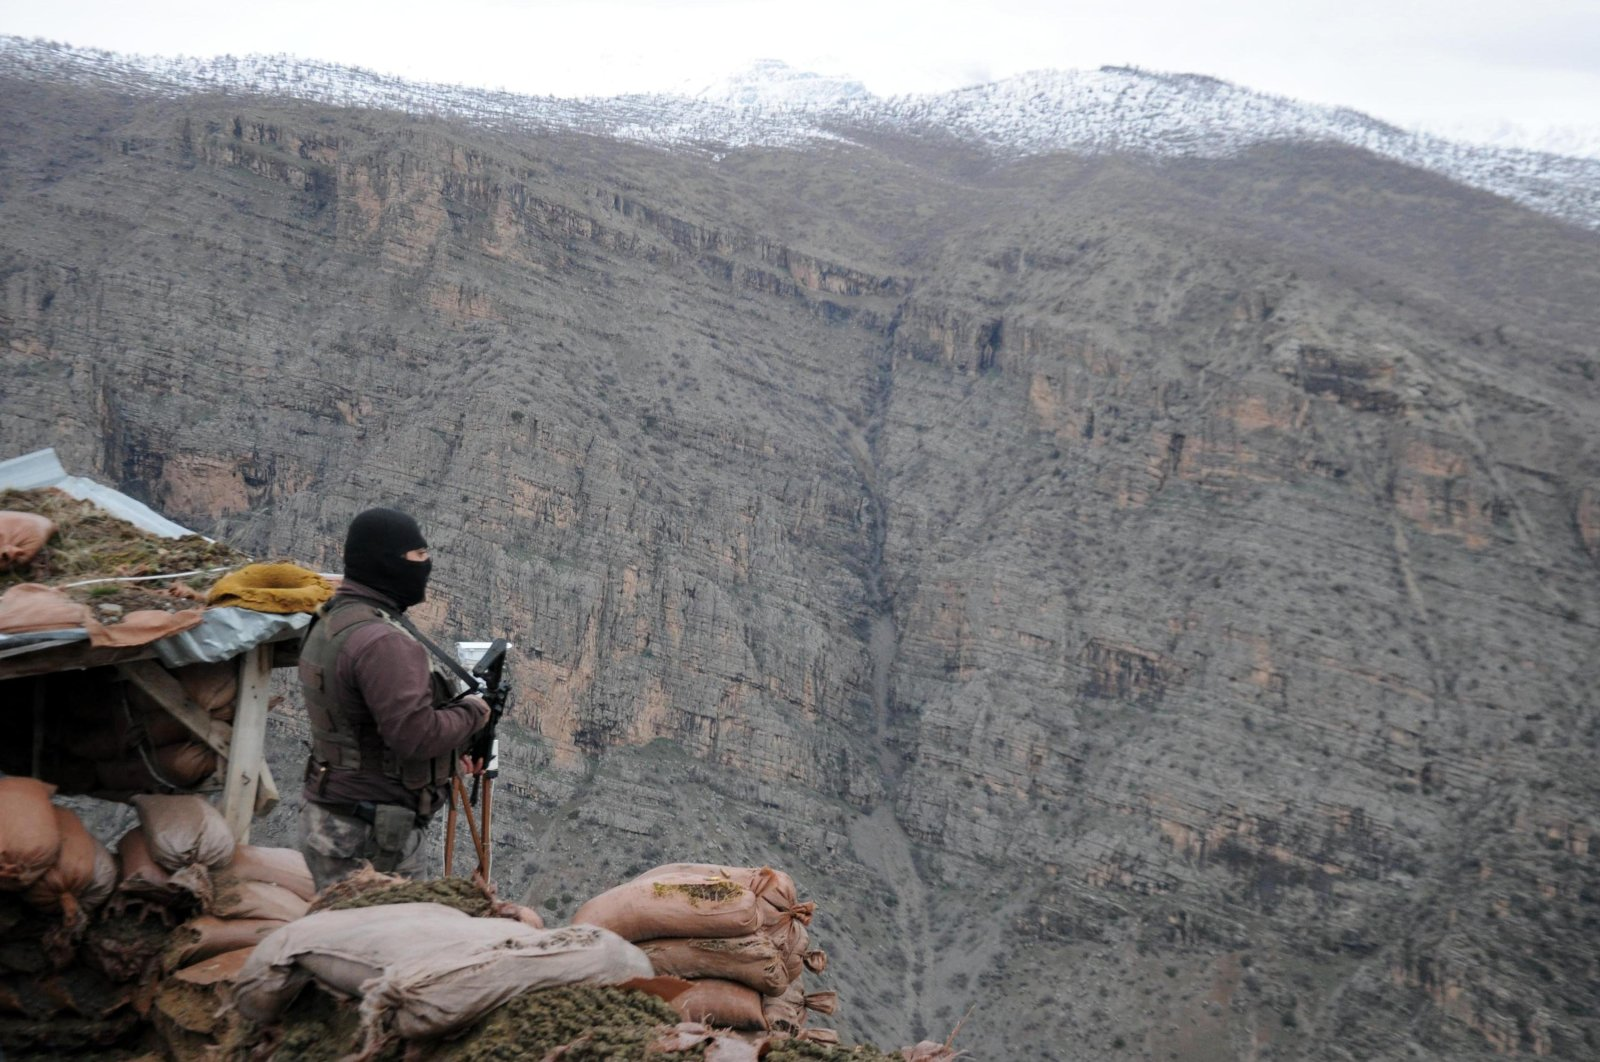 A Turkish soldier stands on guard in the Sancaktepe Base in Çukurca district, Hakkari province near the Iraqi border on Oct. 26, 2019 (Sabah File Photo)